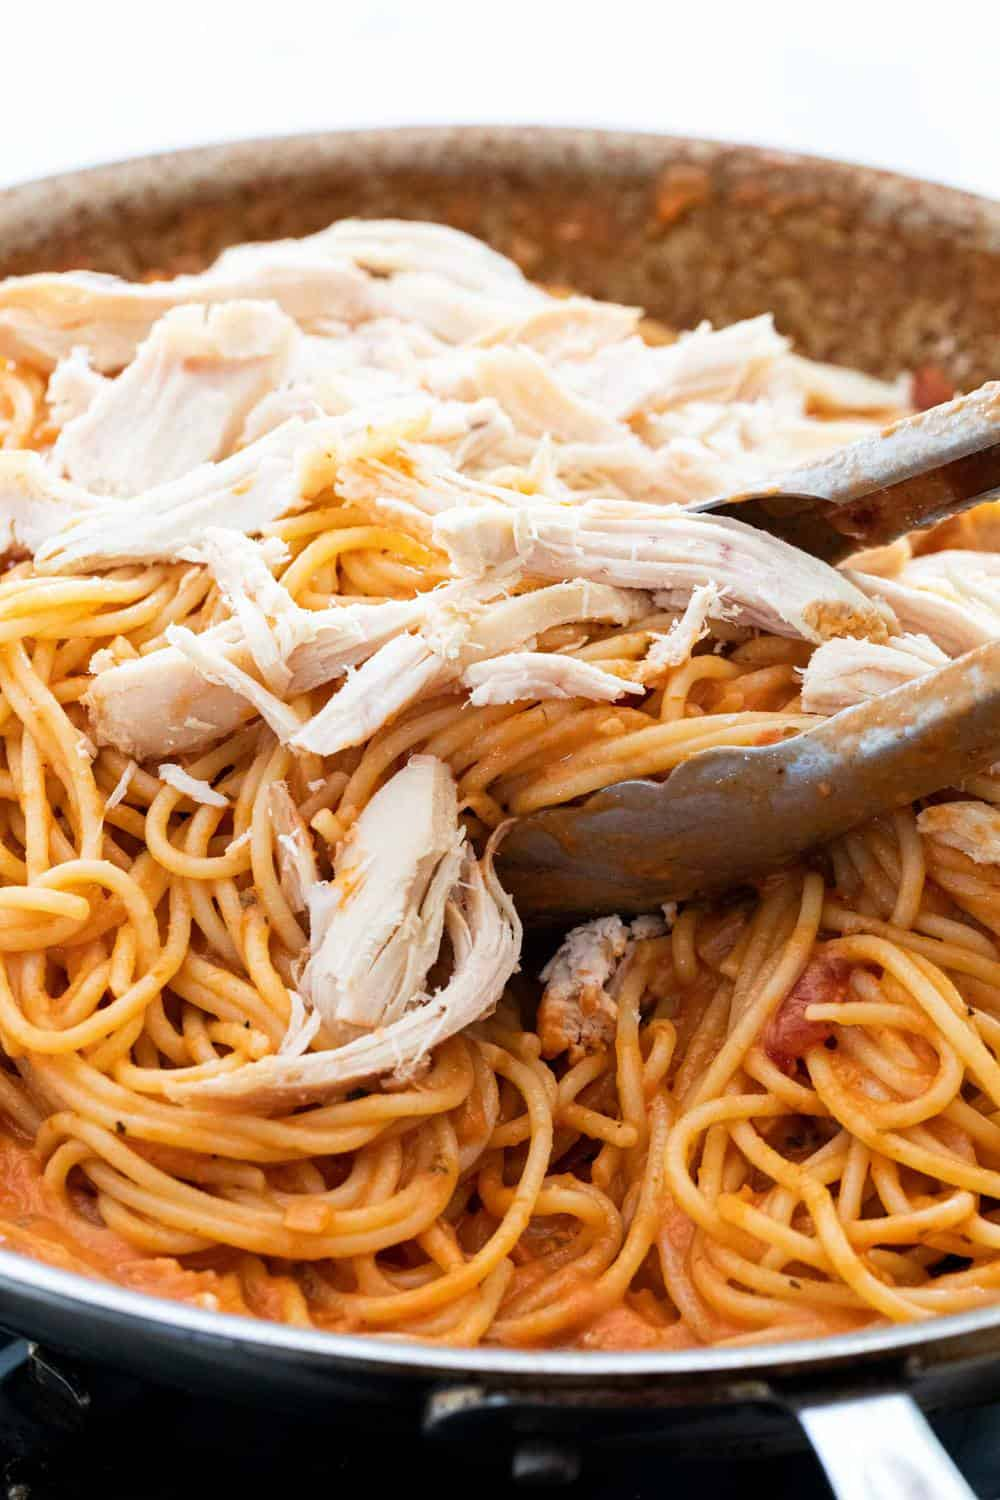 Shredded chicken on top of pasta